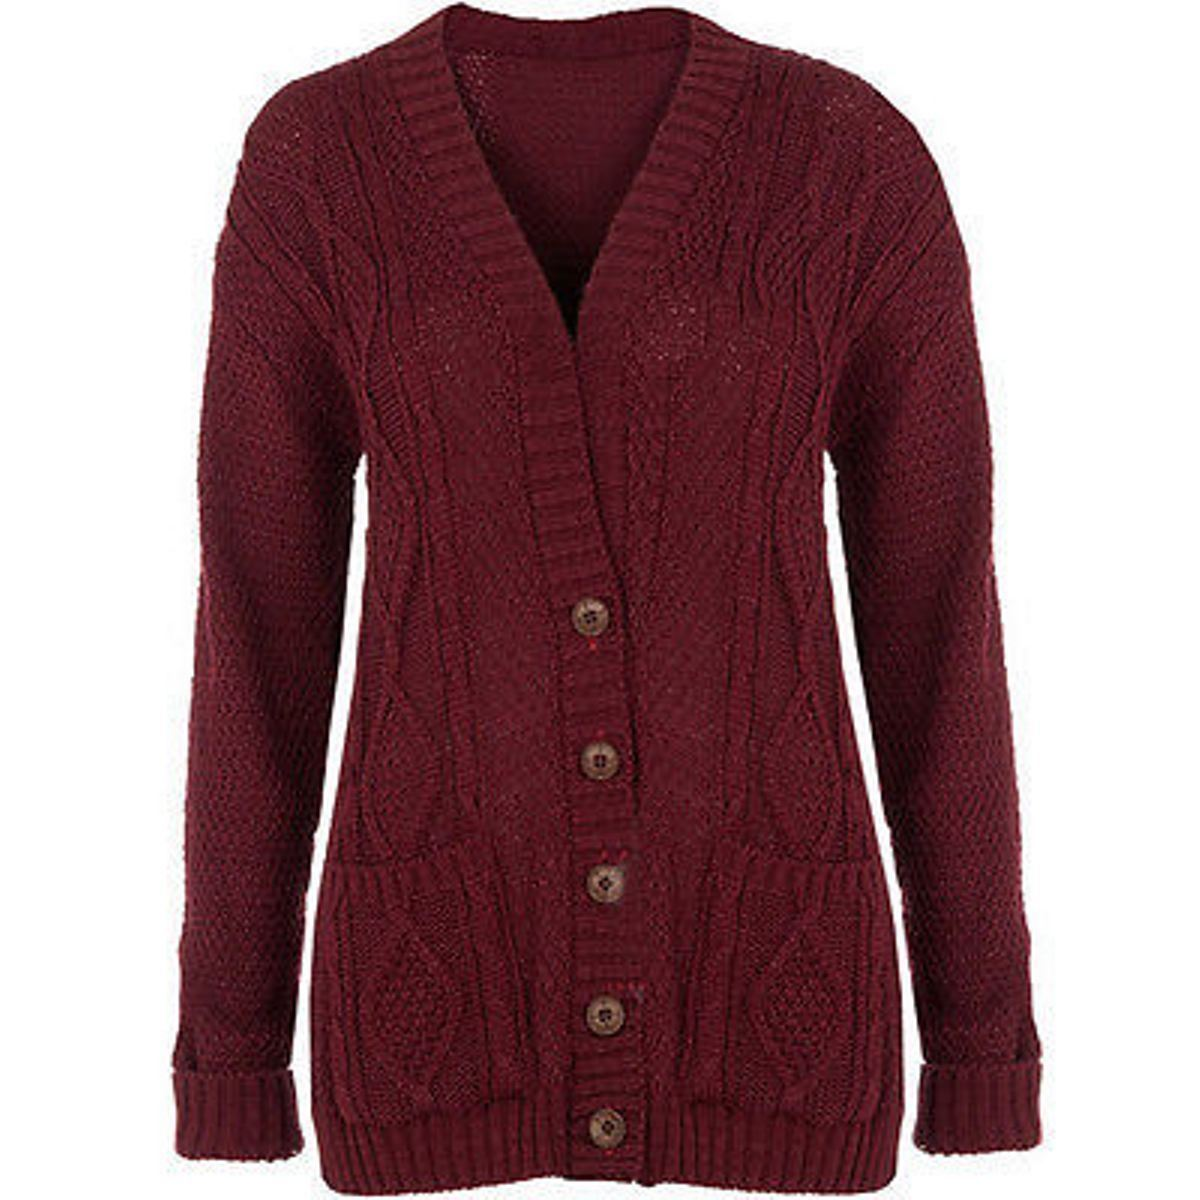 NEW WOMENS LADIES PLUS SIZE CHUNKY CABLE KNITTED BUTTON GRANDAD ...